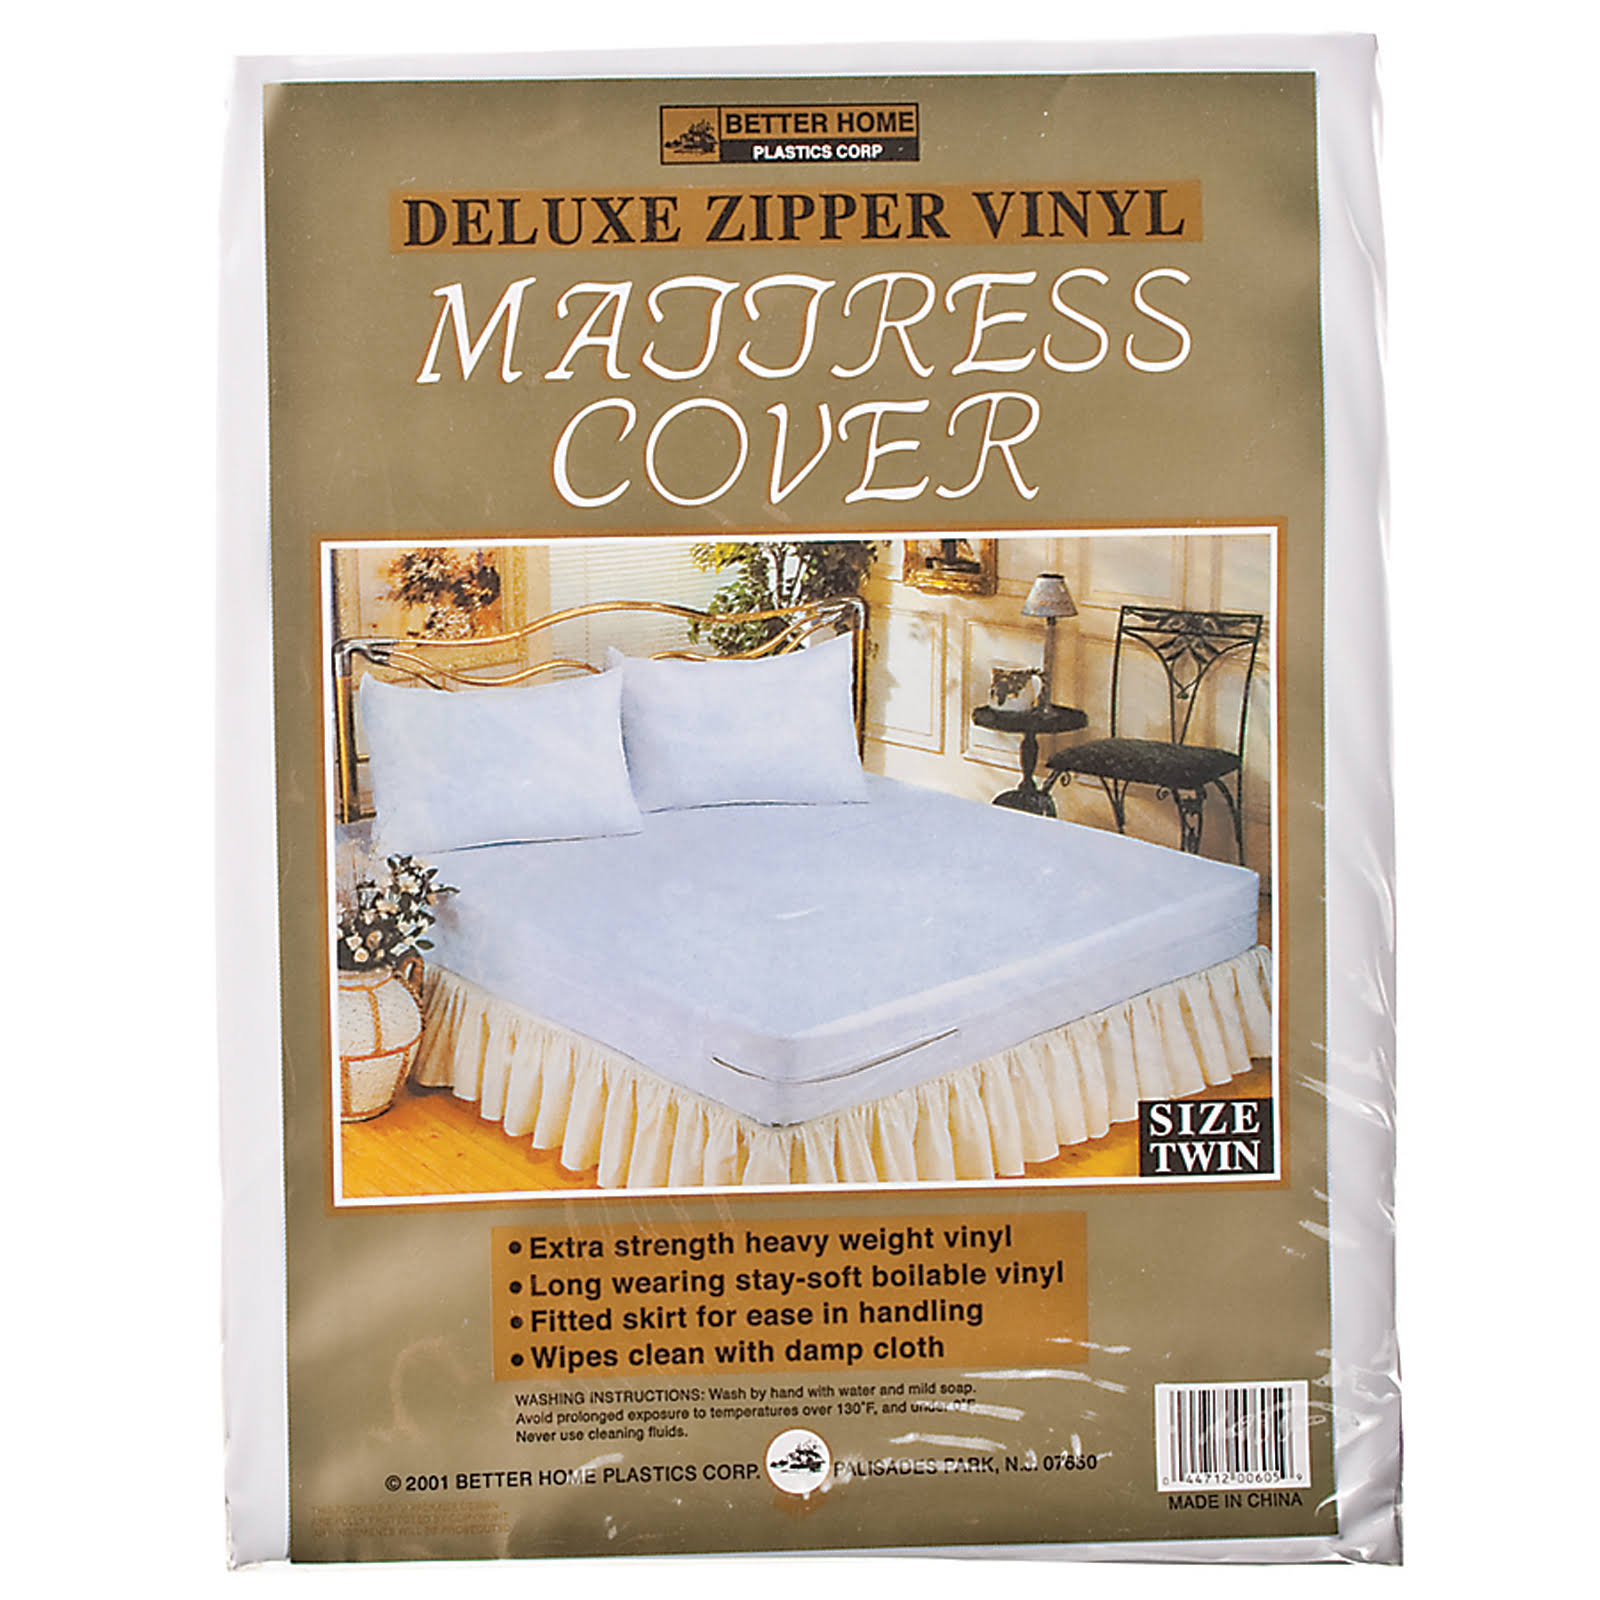 Better Home Vinyl Mattress Cover - Zippered Twin, Vinyl, Twin - 1 Pkg